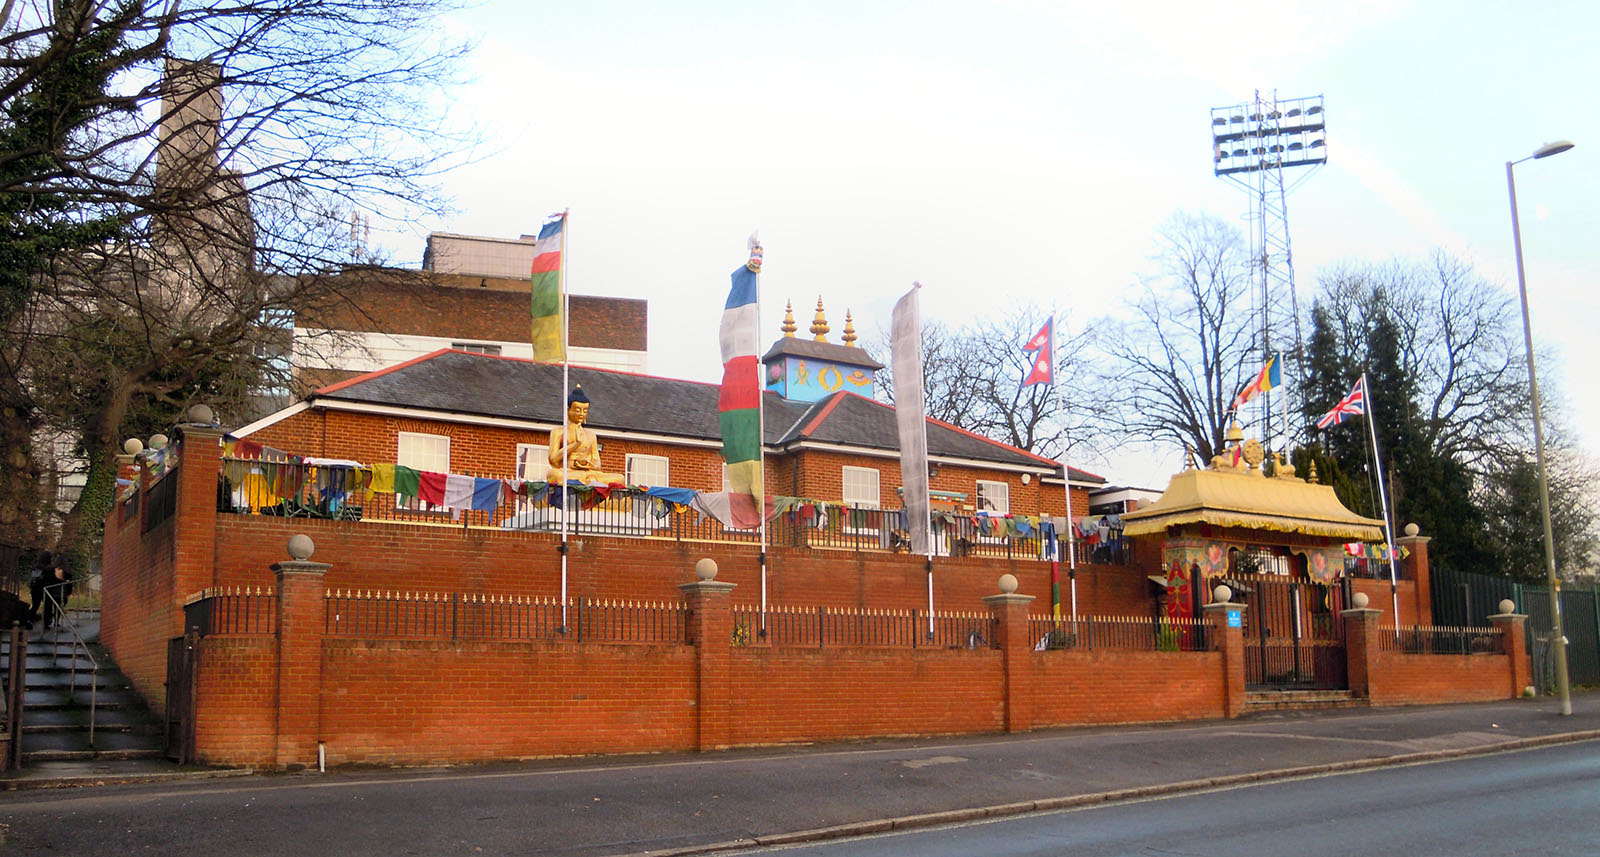 The Aldershot Buddhist Centre.